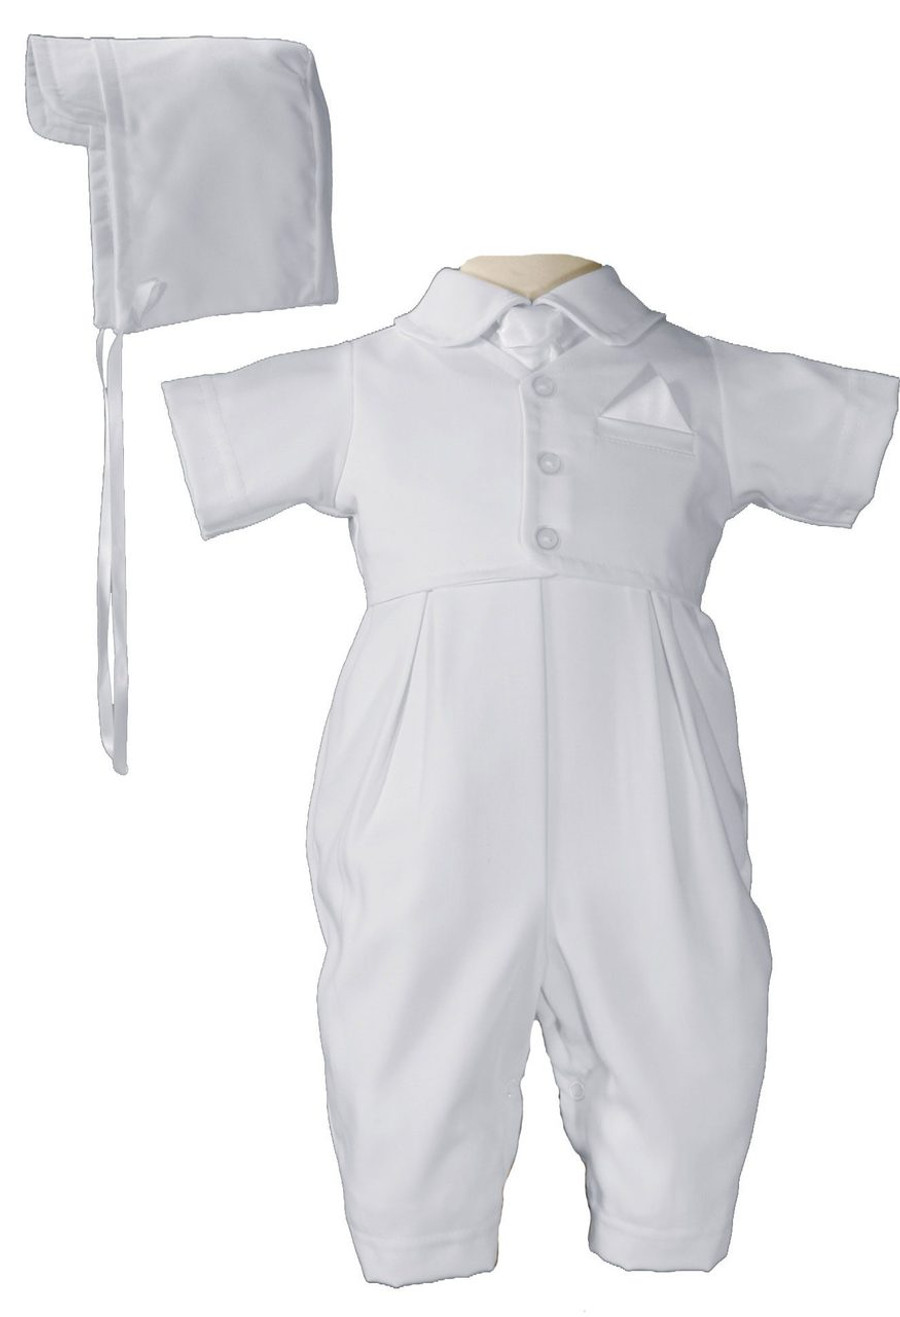 Handsome vested short sleeve coverall of the softest gabardine provides luxurious comfort for your little one. Includes matching hat.